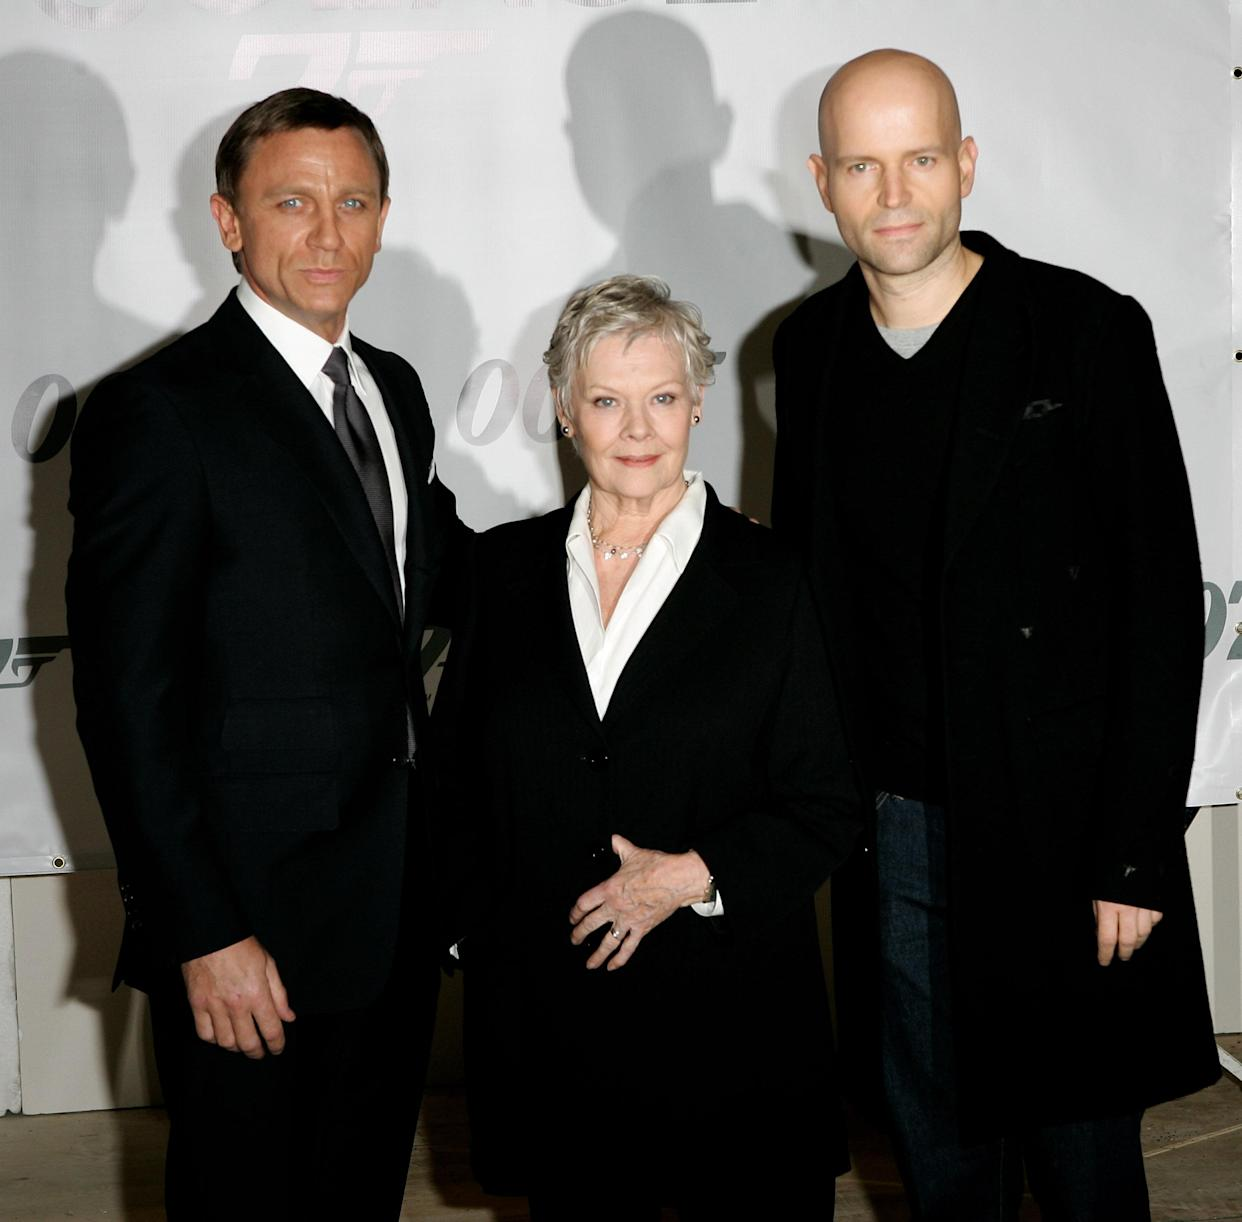 LONDON - JANUARY 24:  Actors Daniel Craig (L) and Dame Judi Dench and director Marc Forster attend a photocall to celebrate the start of production of the 22nd James Bond film 'Quantum of Solace' at Pinewood Studios on January 24, 2007 near London, England.  (Photo by Rosie Greenway/Getty Images)